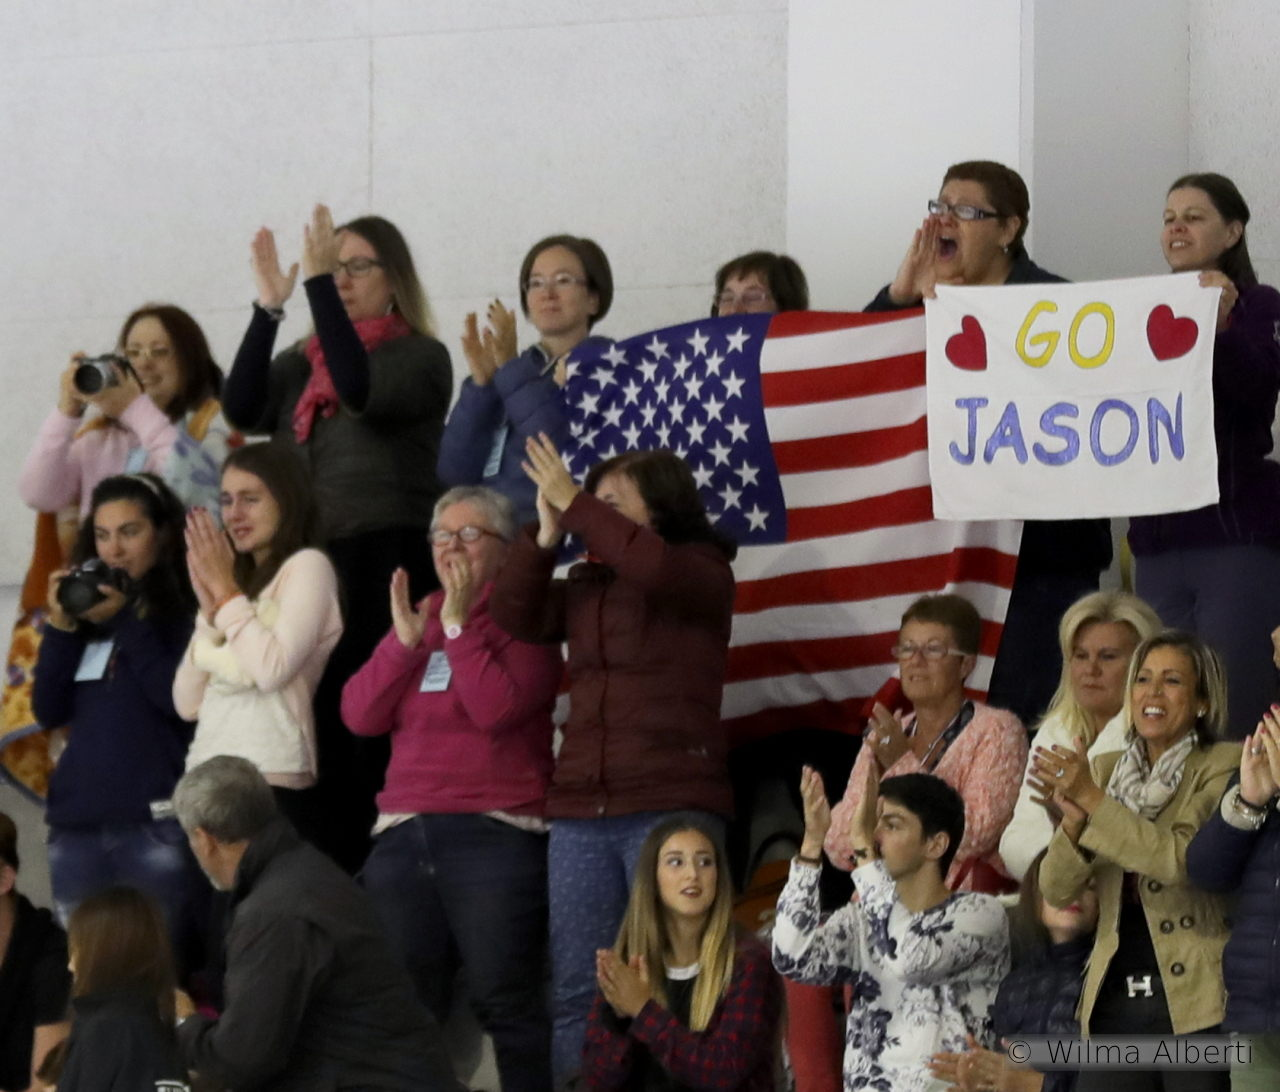 To say Jason's free skate was well received in Bergamo is an understatement